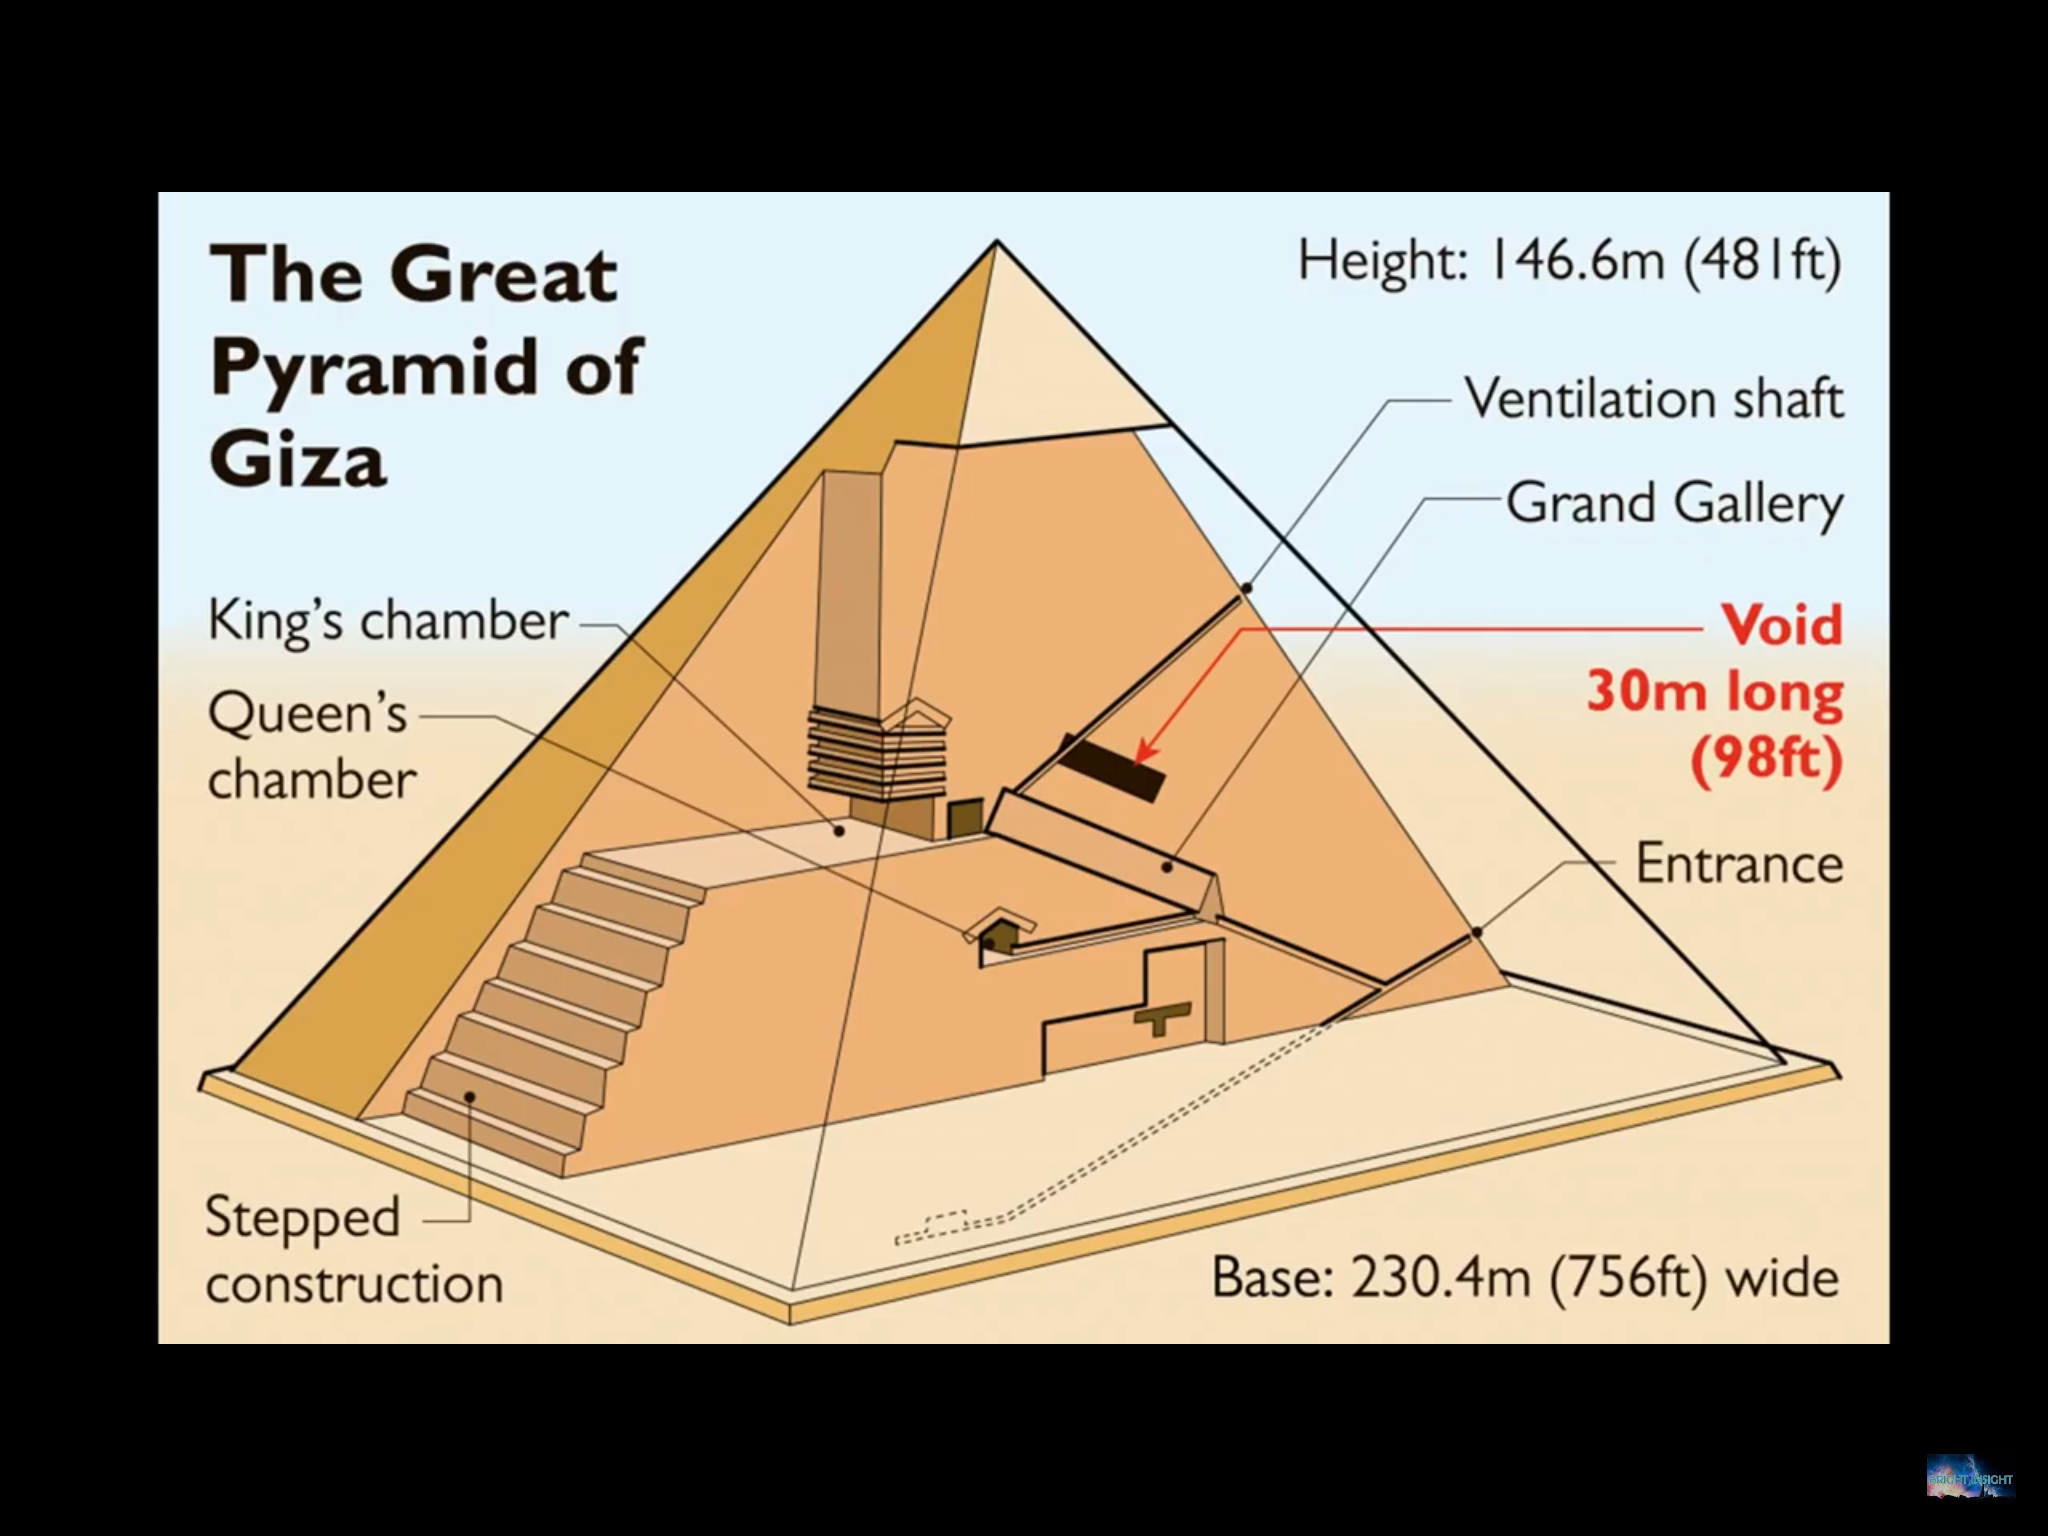 Pin By Steven Rosser On Places Egypt Great Pyramid Of Giza Pyramids Giza